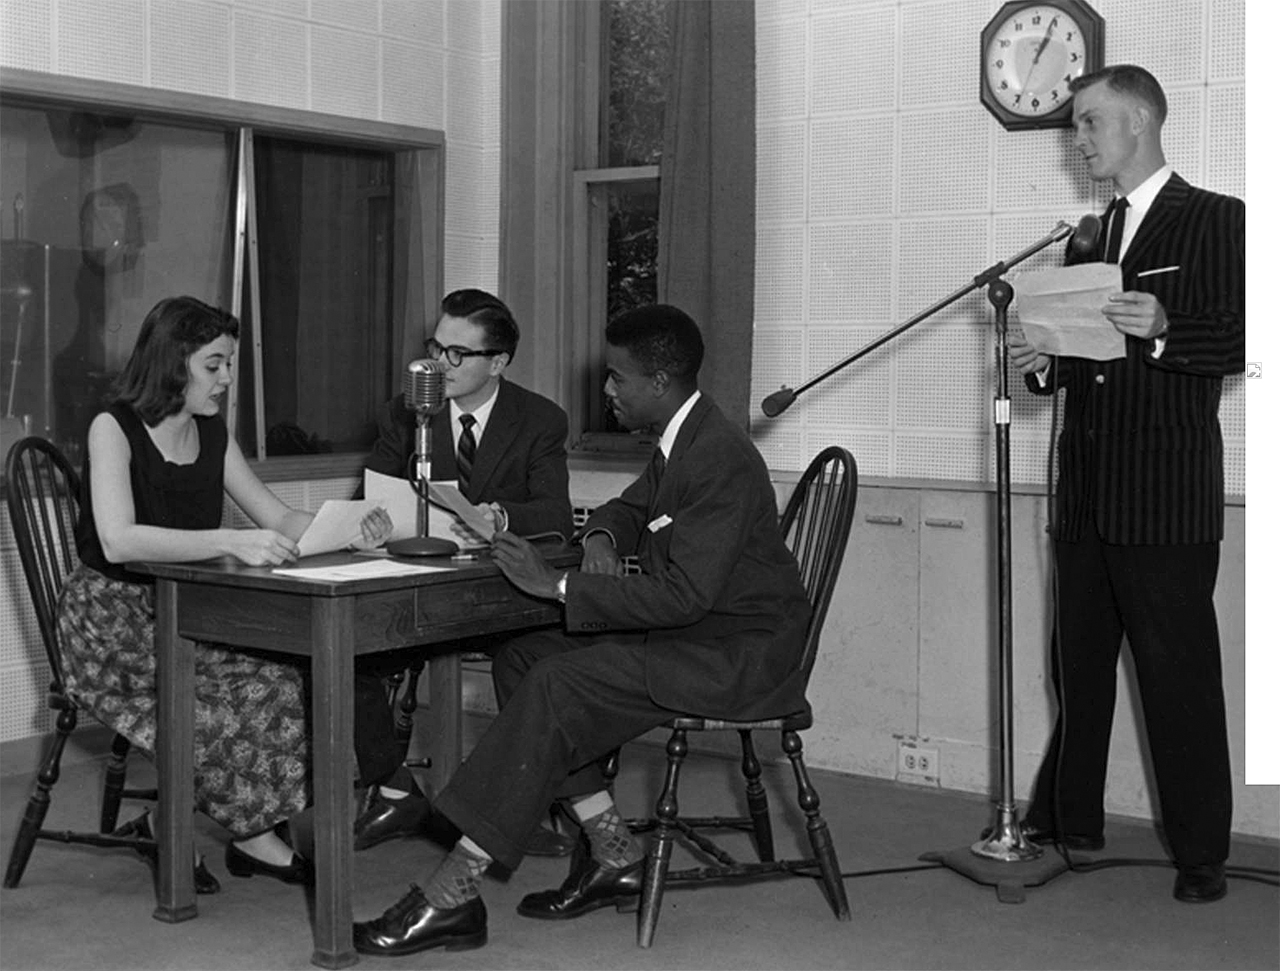 A 1956 broadcast, opposite page, captures the educational programming done from the 1930s into the 1950s. WJBC offered airtime to the ISU station. (Courtesy of the Dr. Jo Ann Rayfield Archives at Illinois State University)